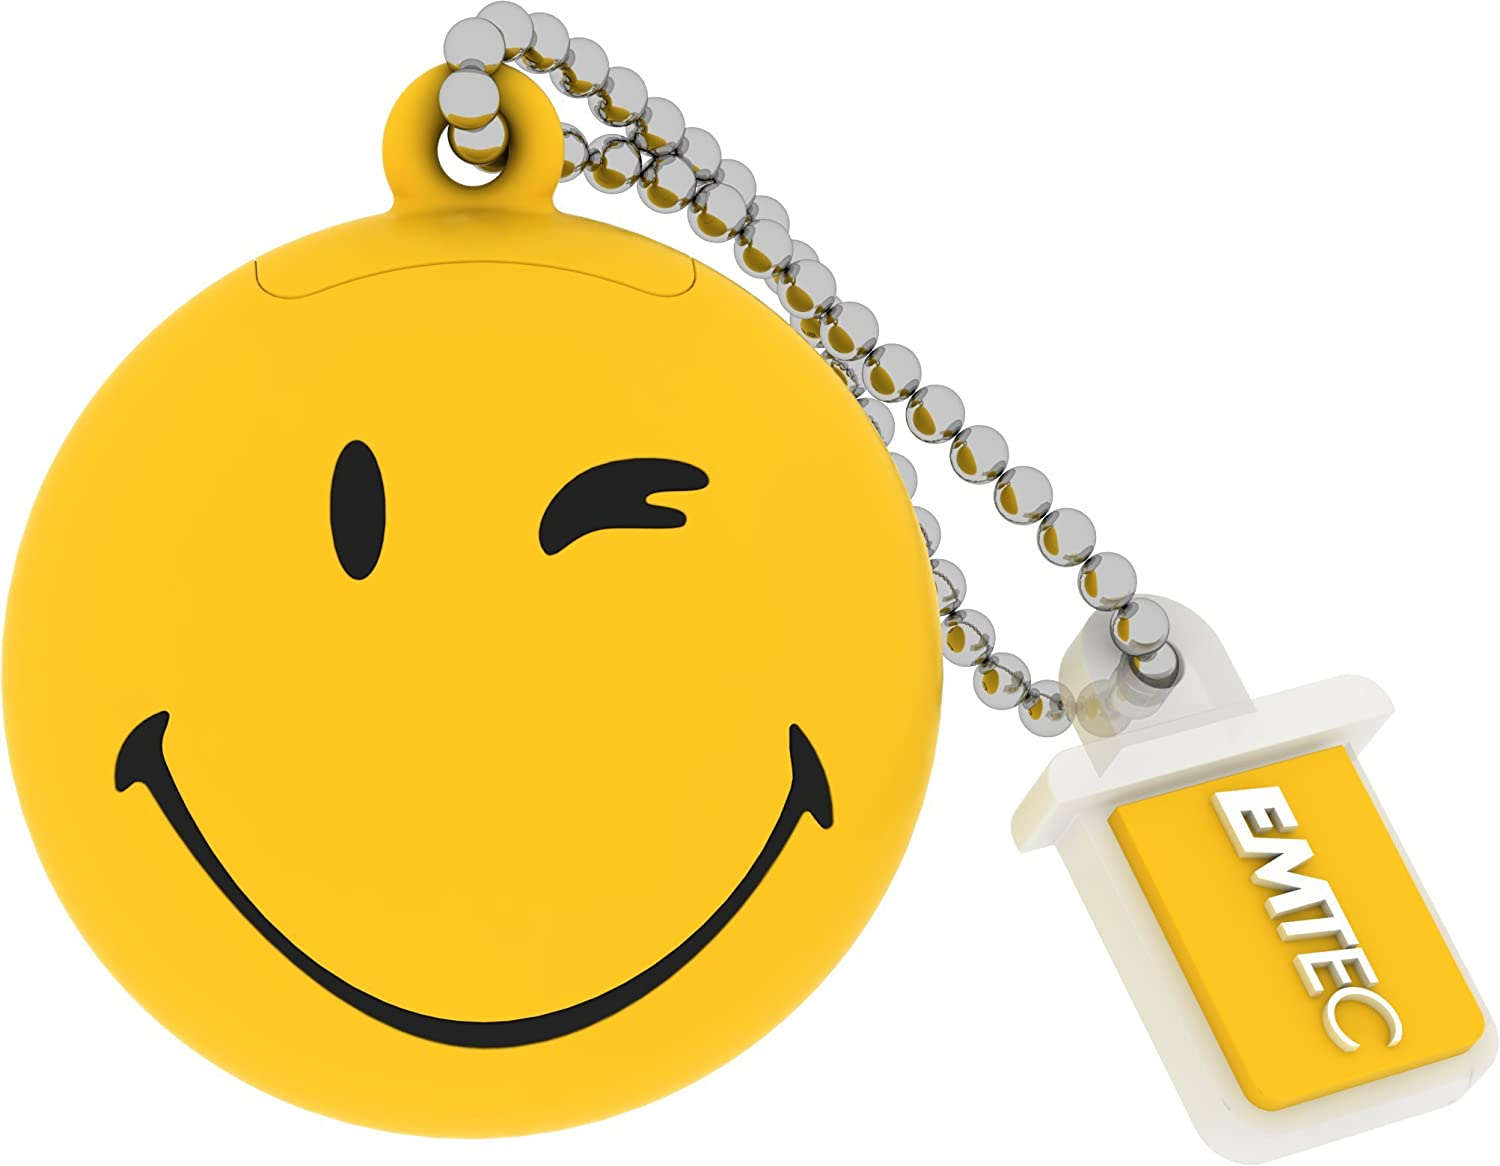 Smiley World 8 GB USB 2.0 Flash Drive, Yellow